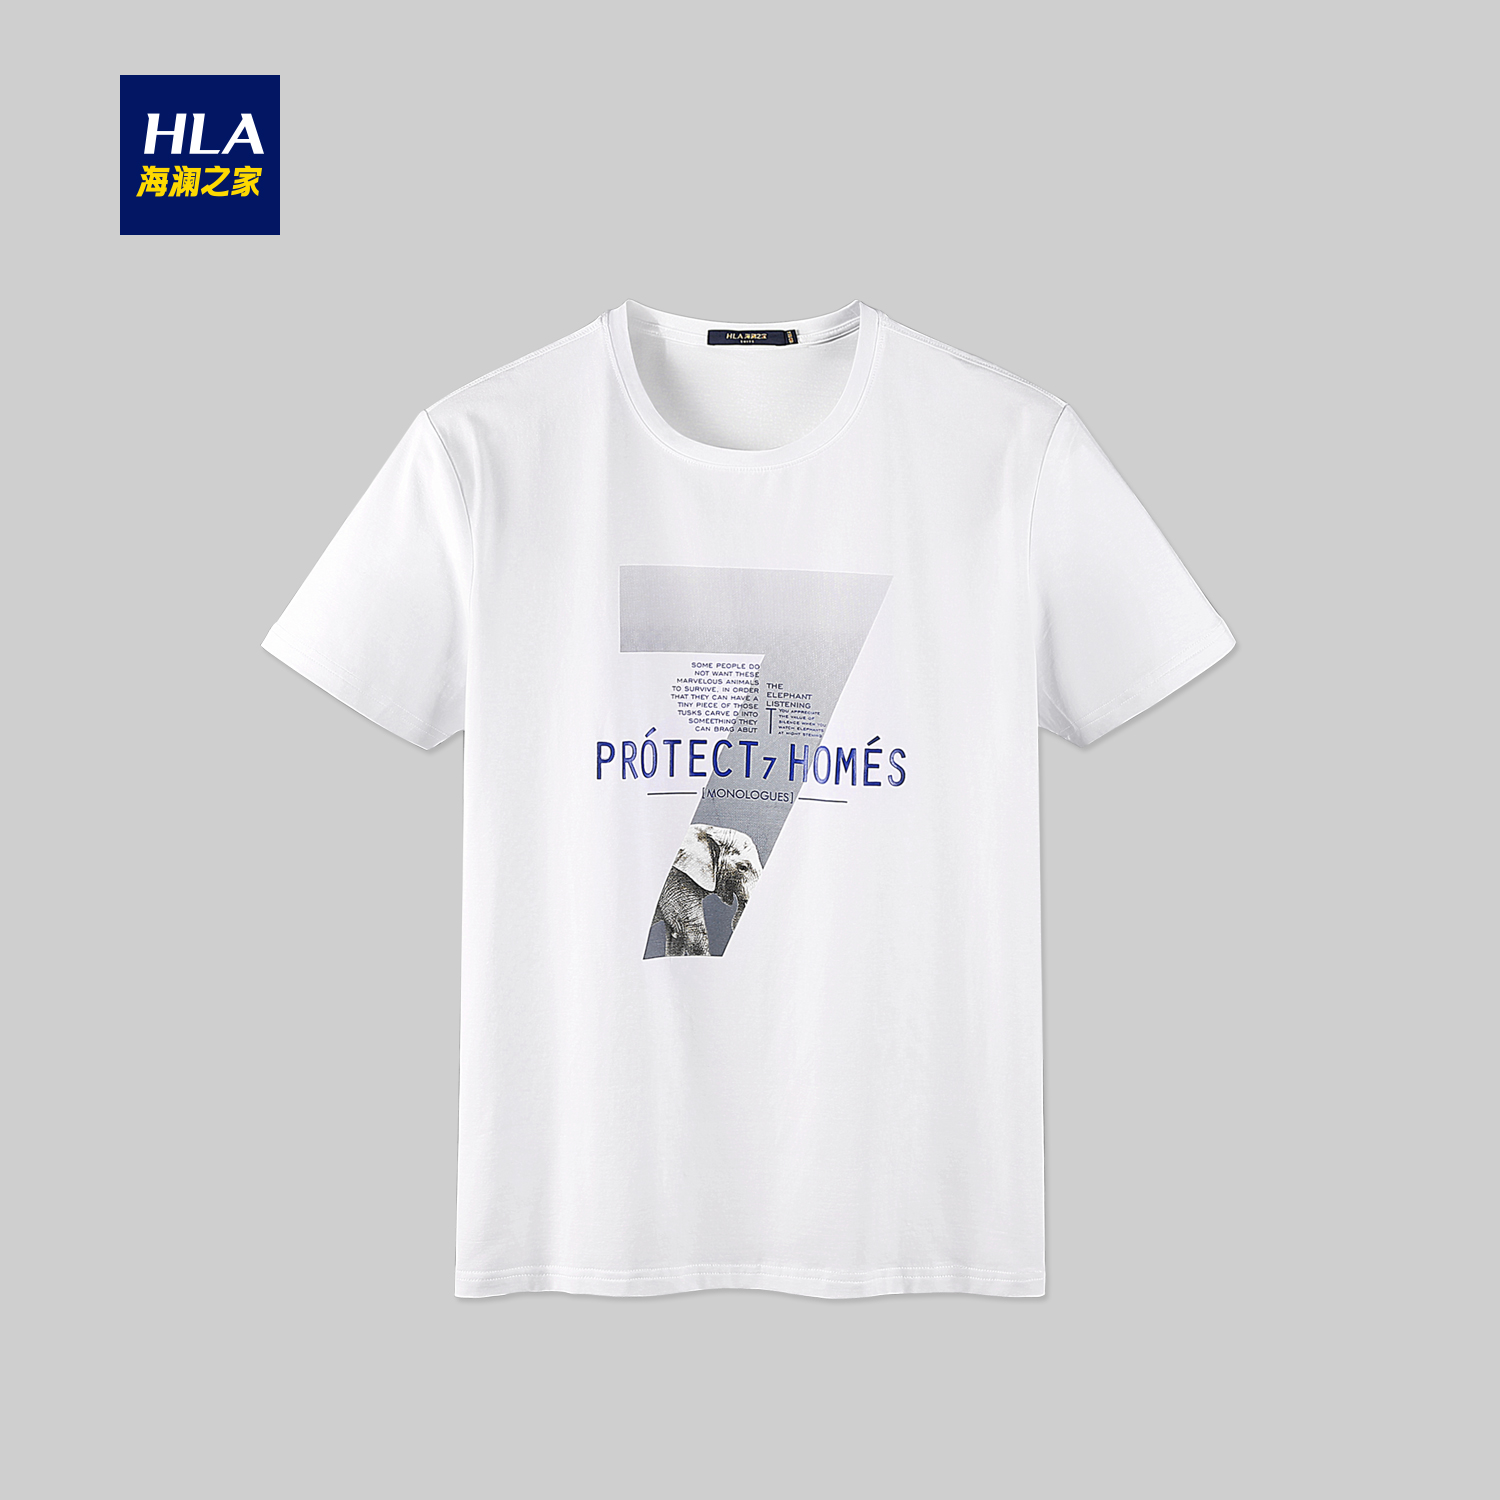 Usd hla hailan house printing short sleeved t for 24 hour t shirt printing